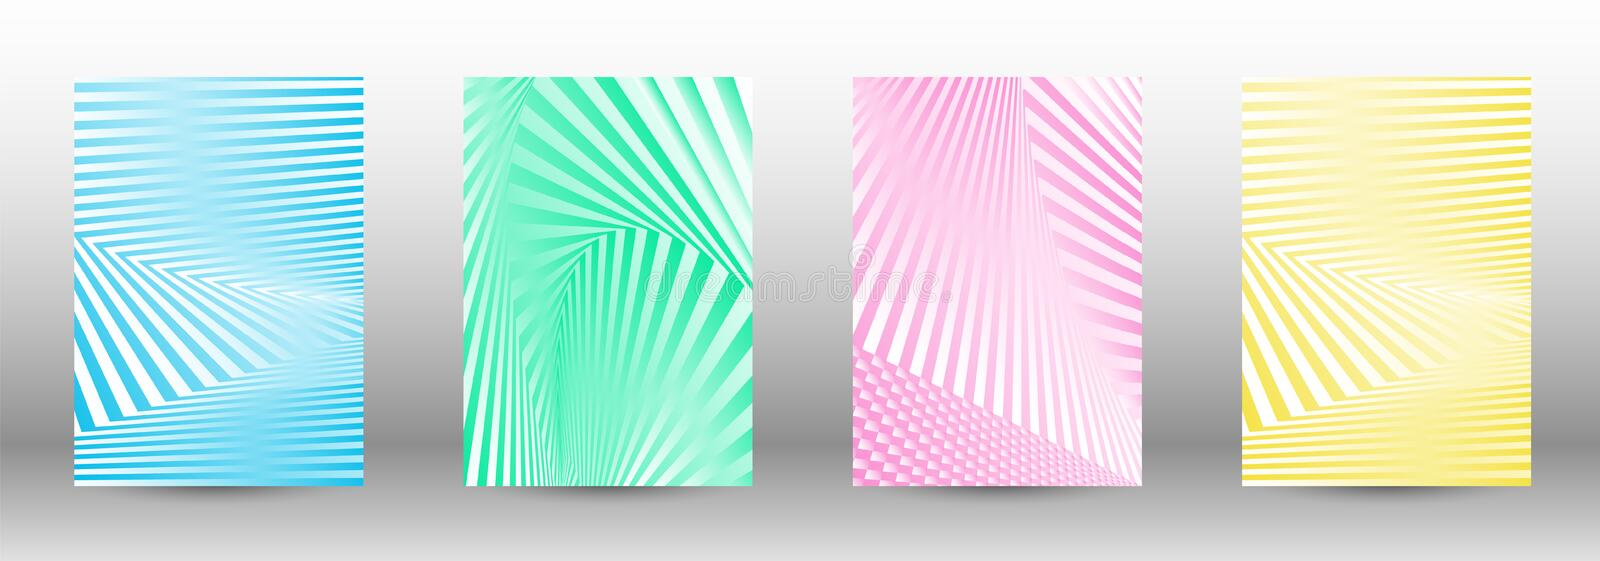 A set of abstract patterns with distorted lines. royalty free illustration